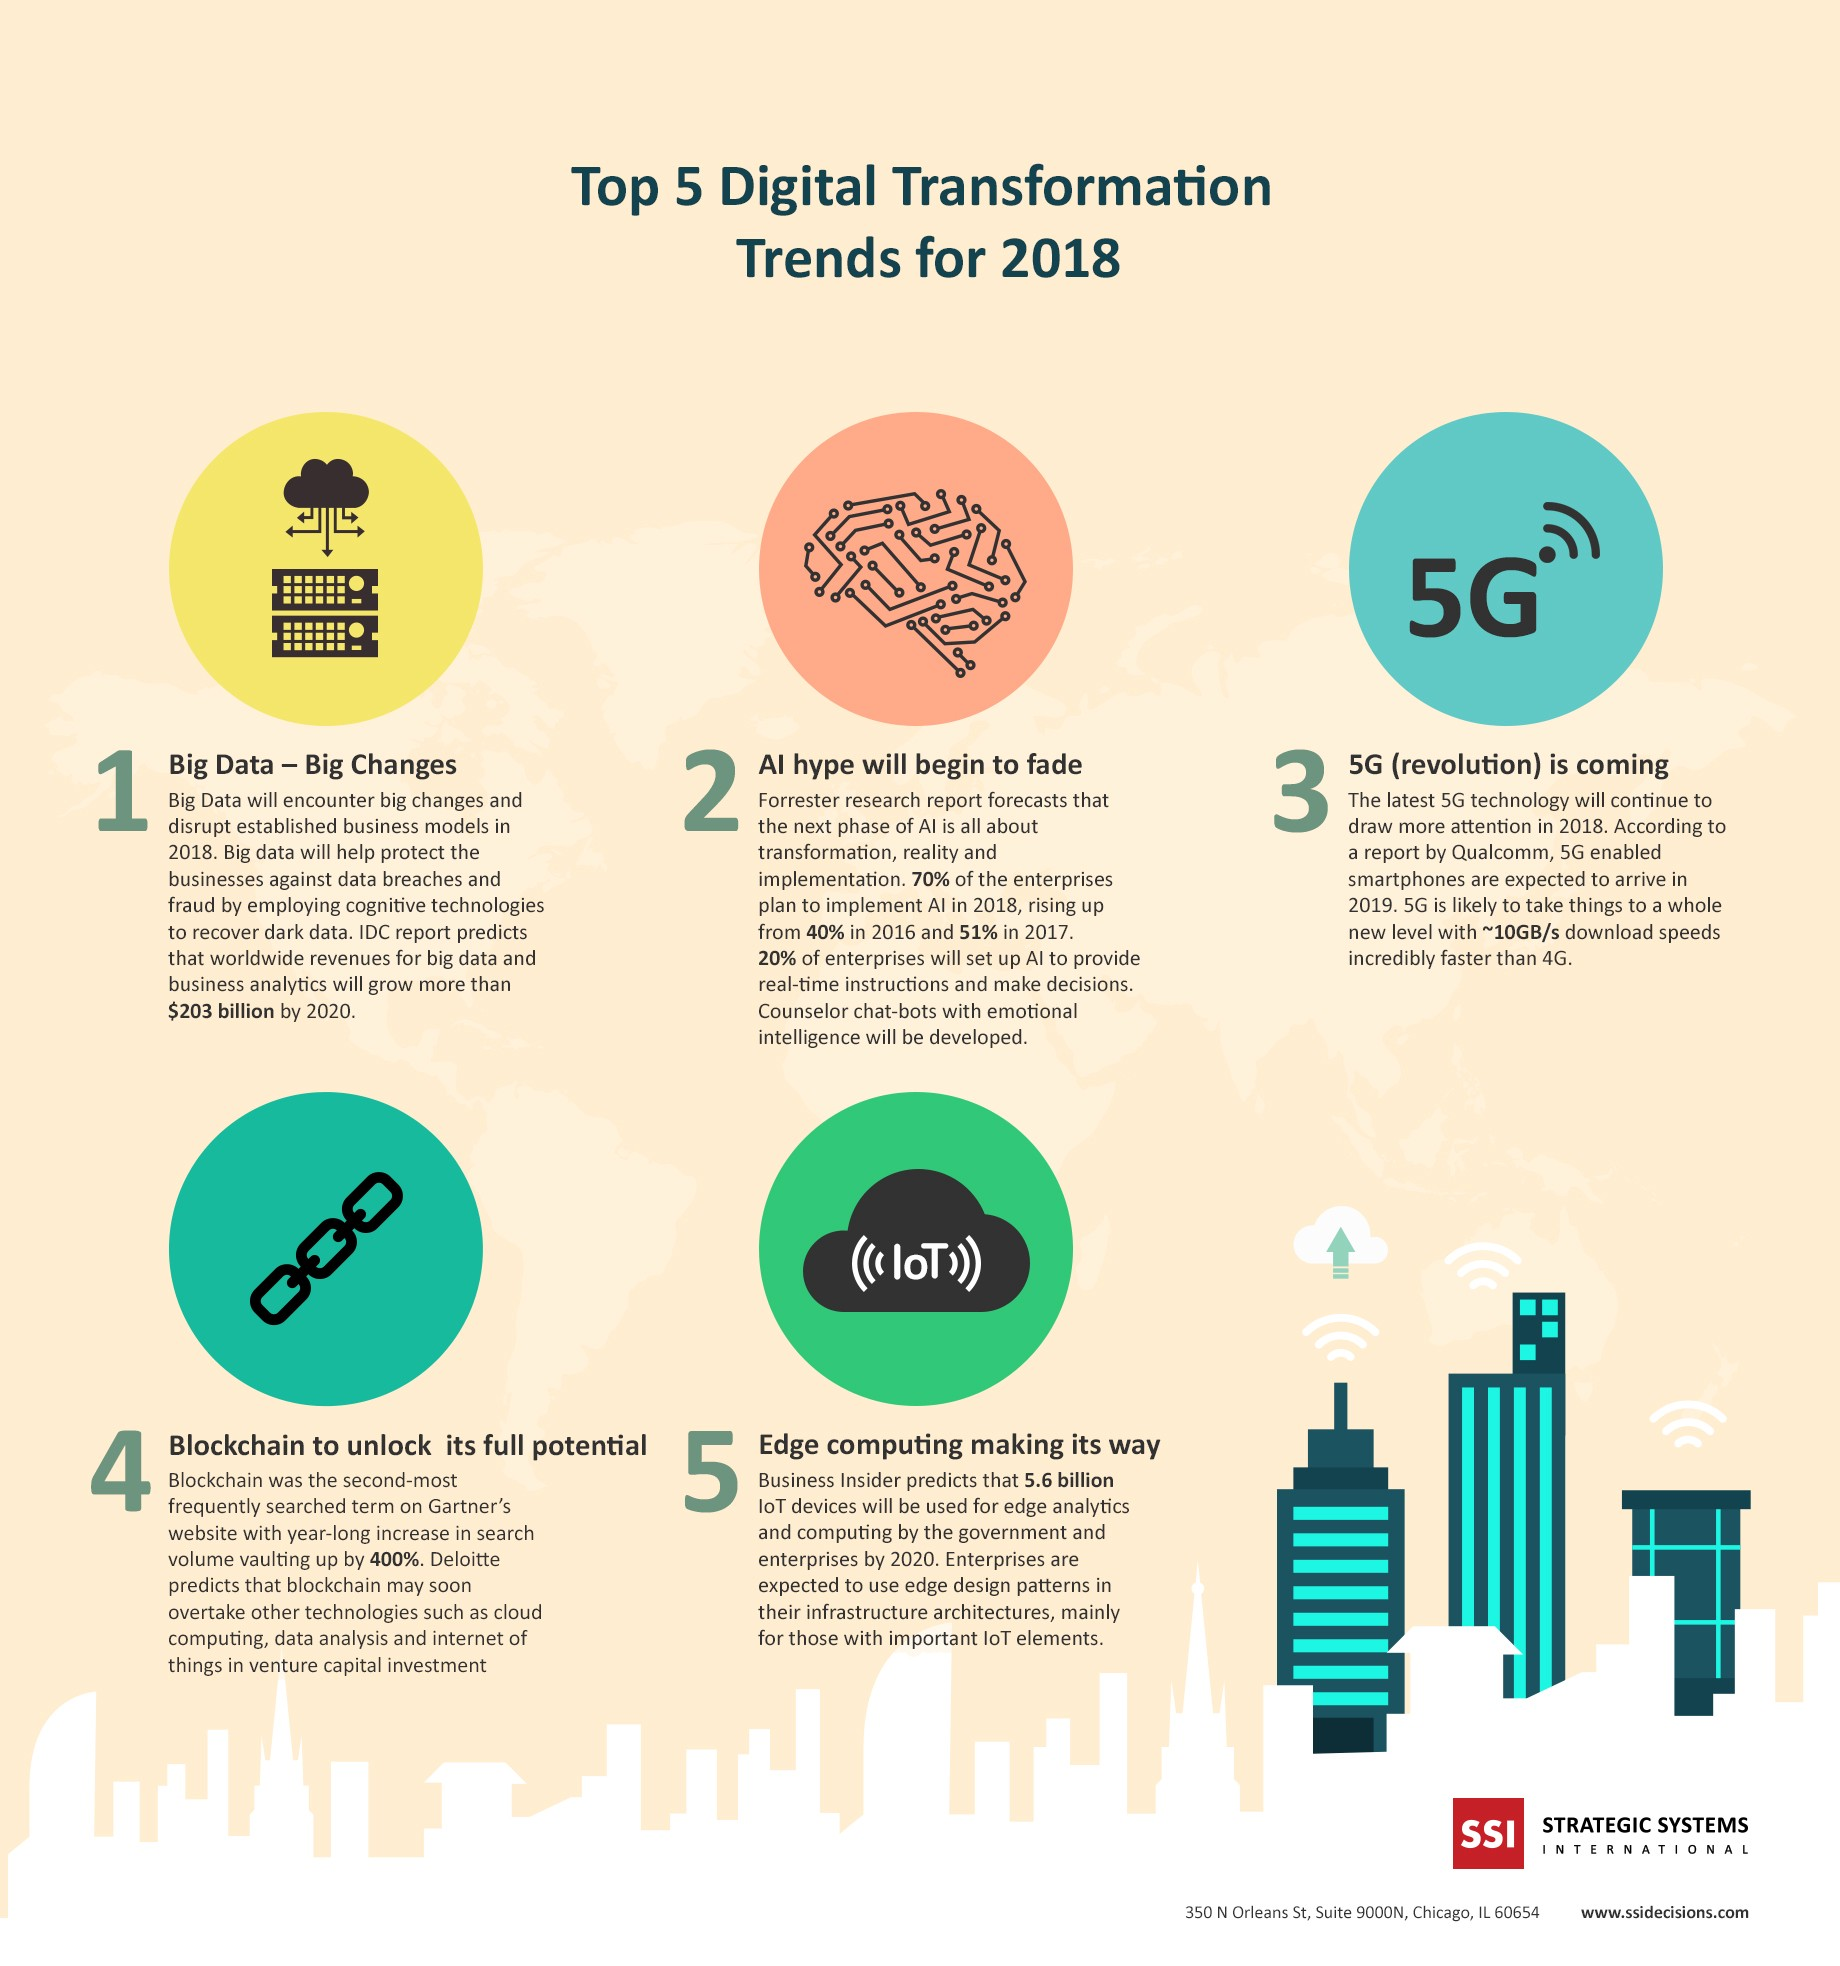 top 5 digital transformation trends for 2018 infographic